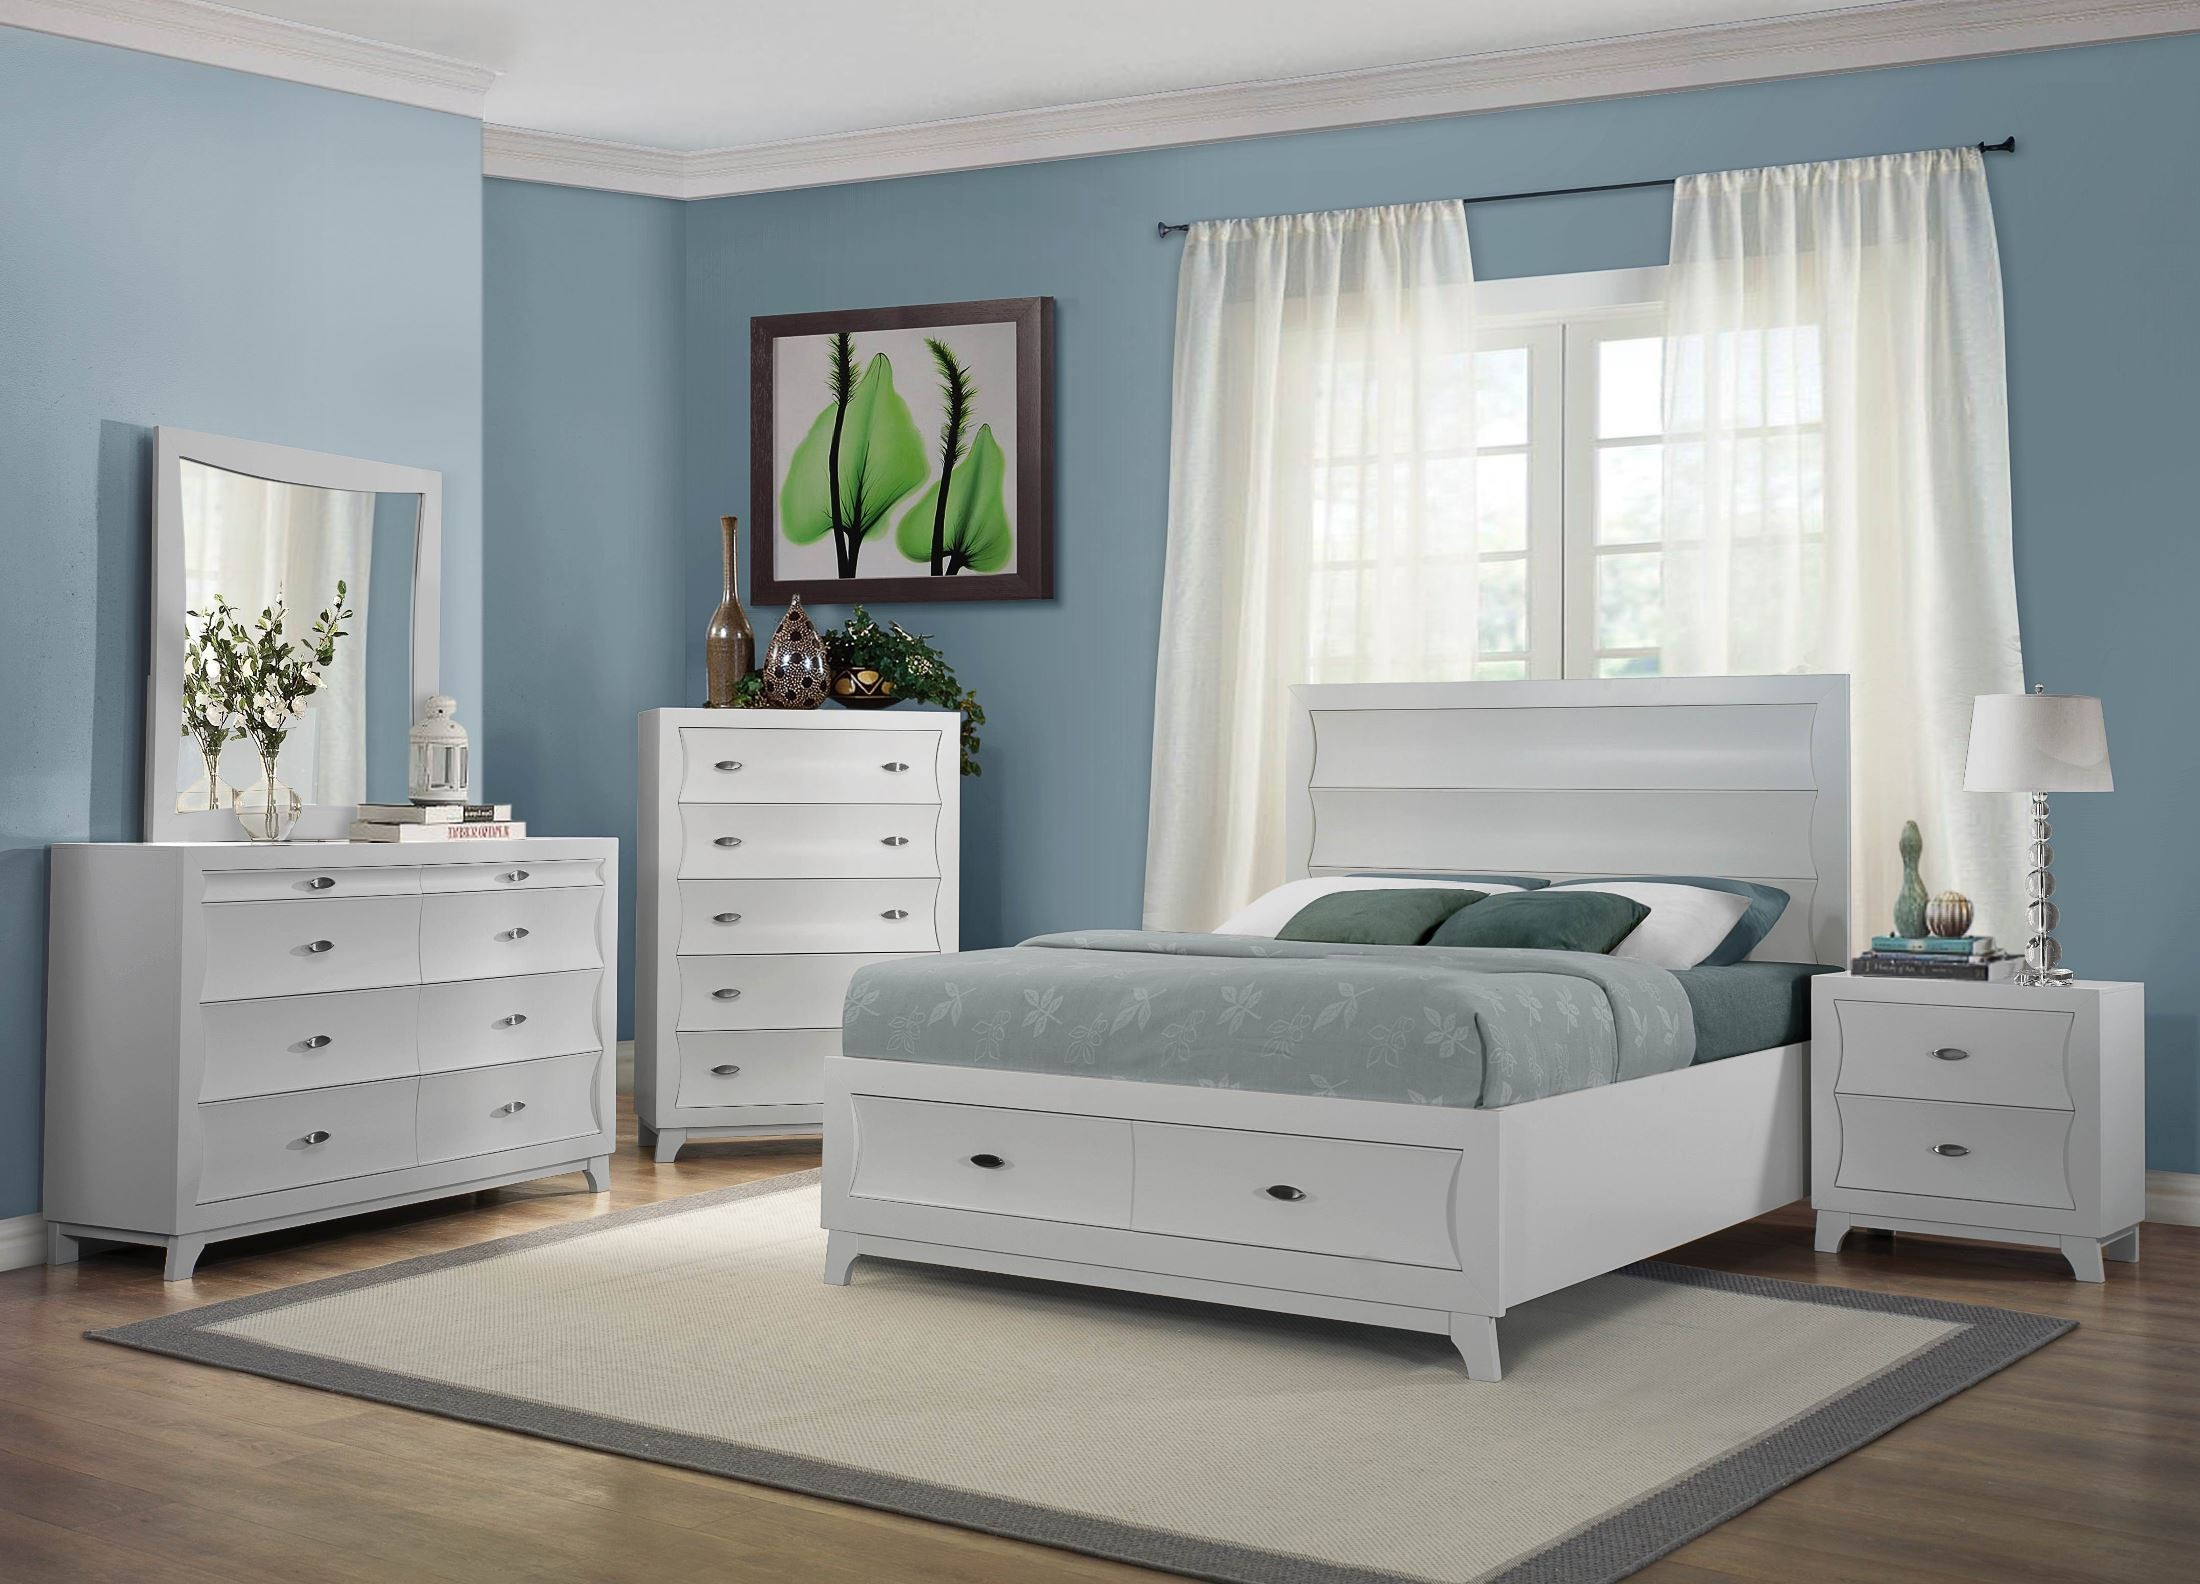 Zandra white platform storage bedroom set from homelegance for White bedroom collection